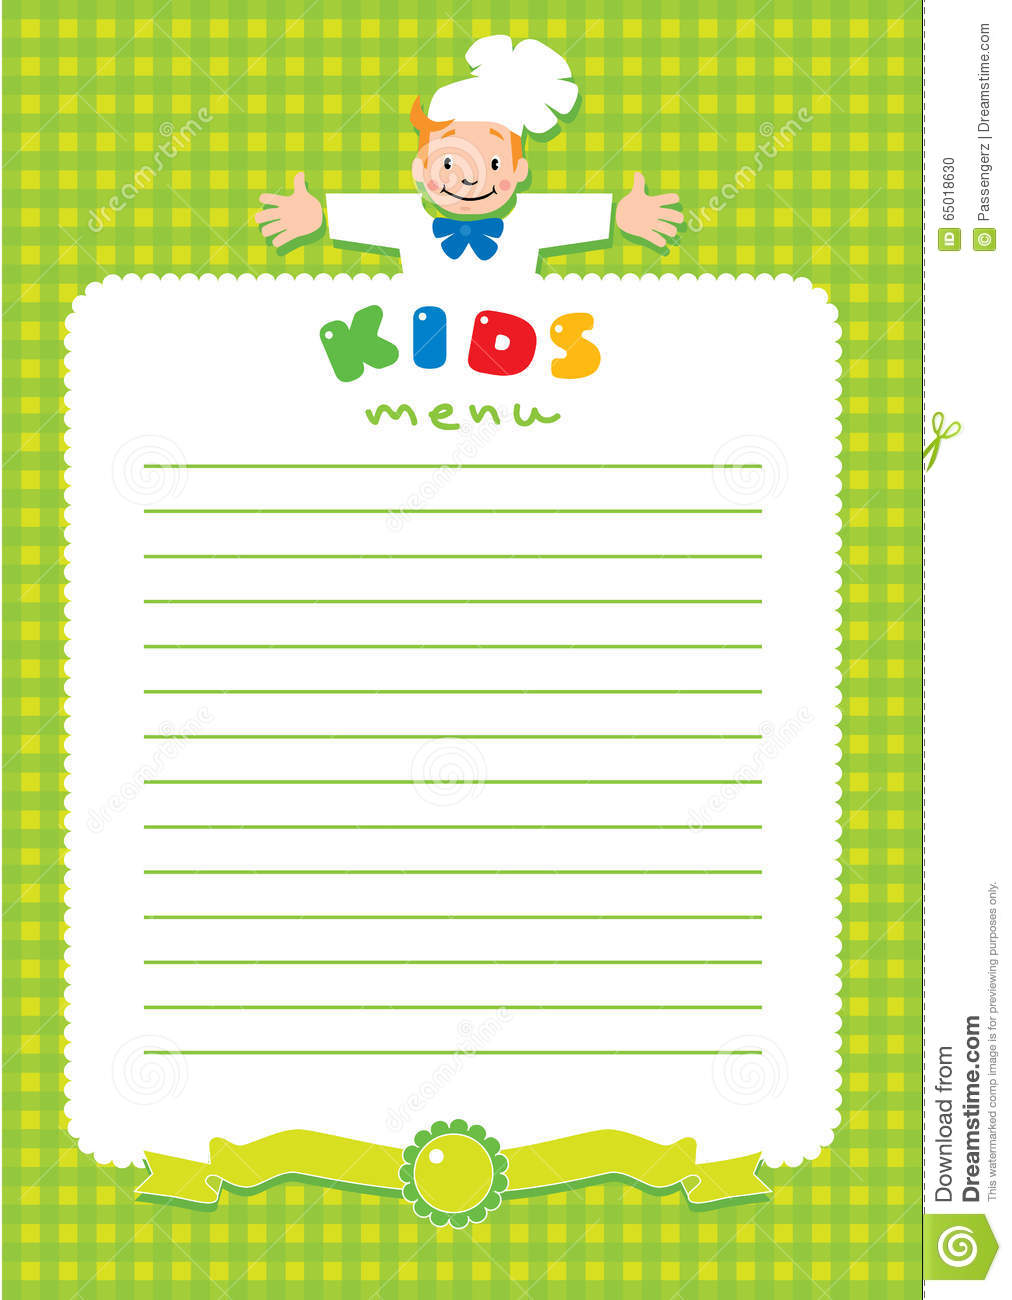 Design Template For Kids Menu With Funny Cook Boy Stock Vector ...